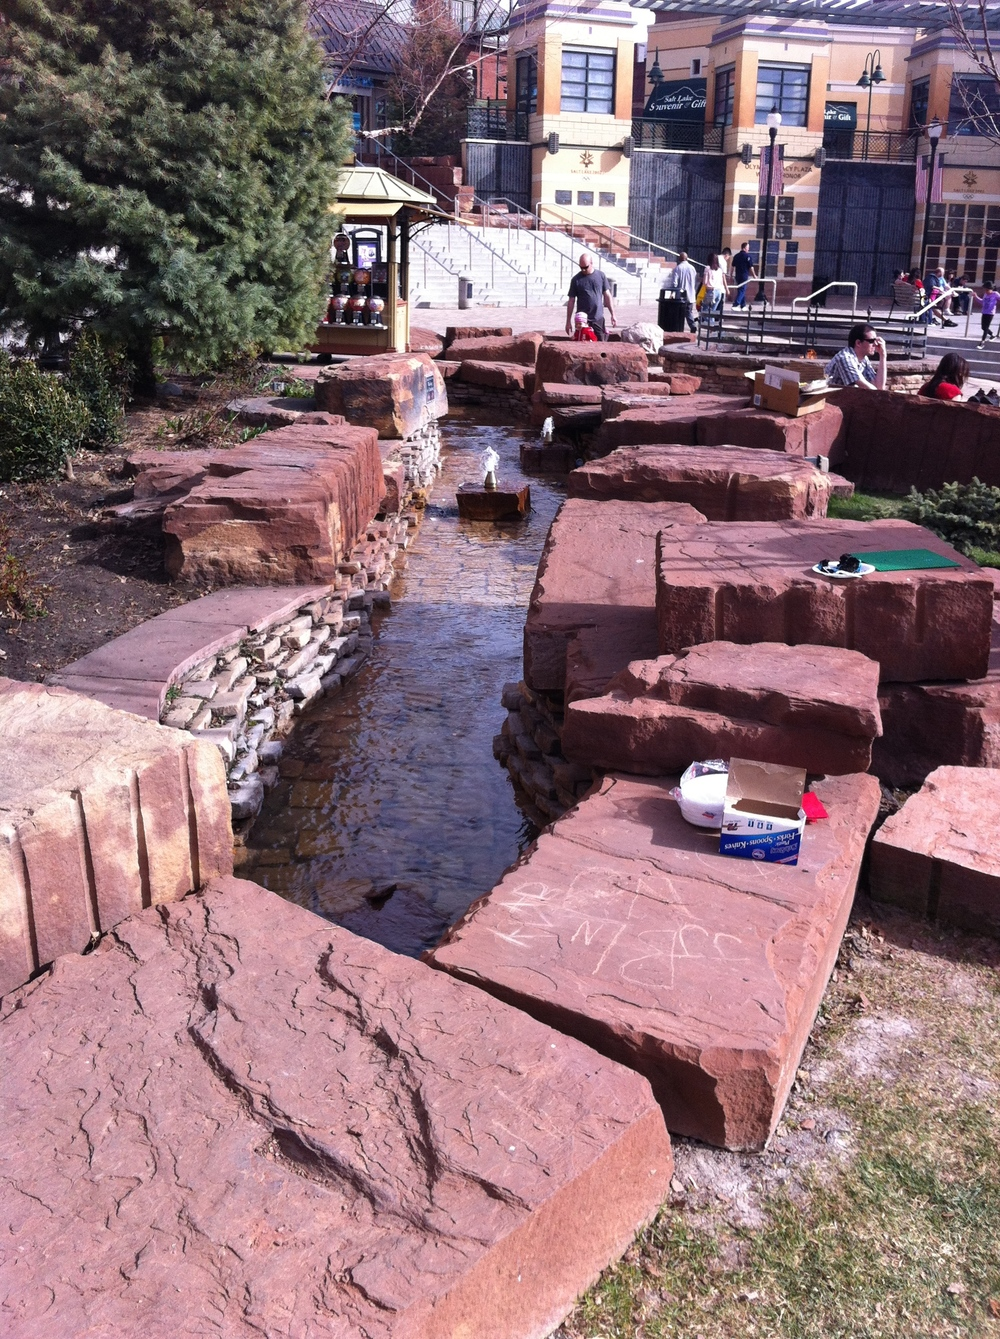 The plaza includes these red rocks and water feature inspired by the Utah landscape.